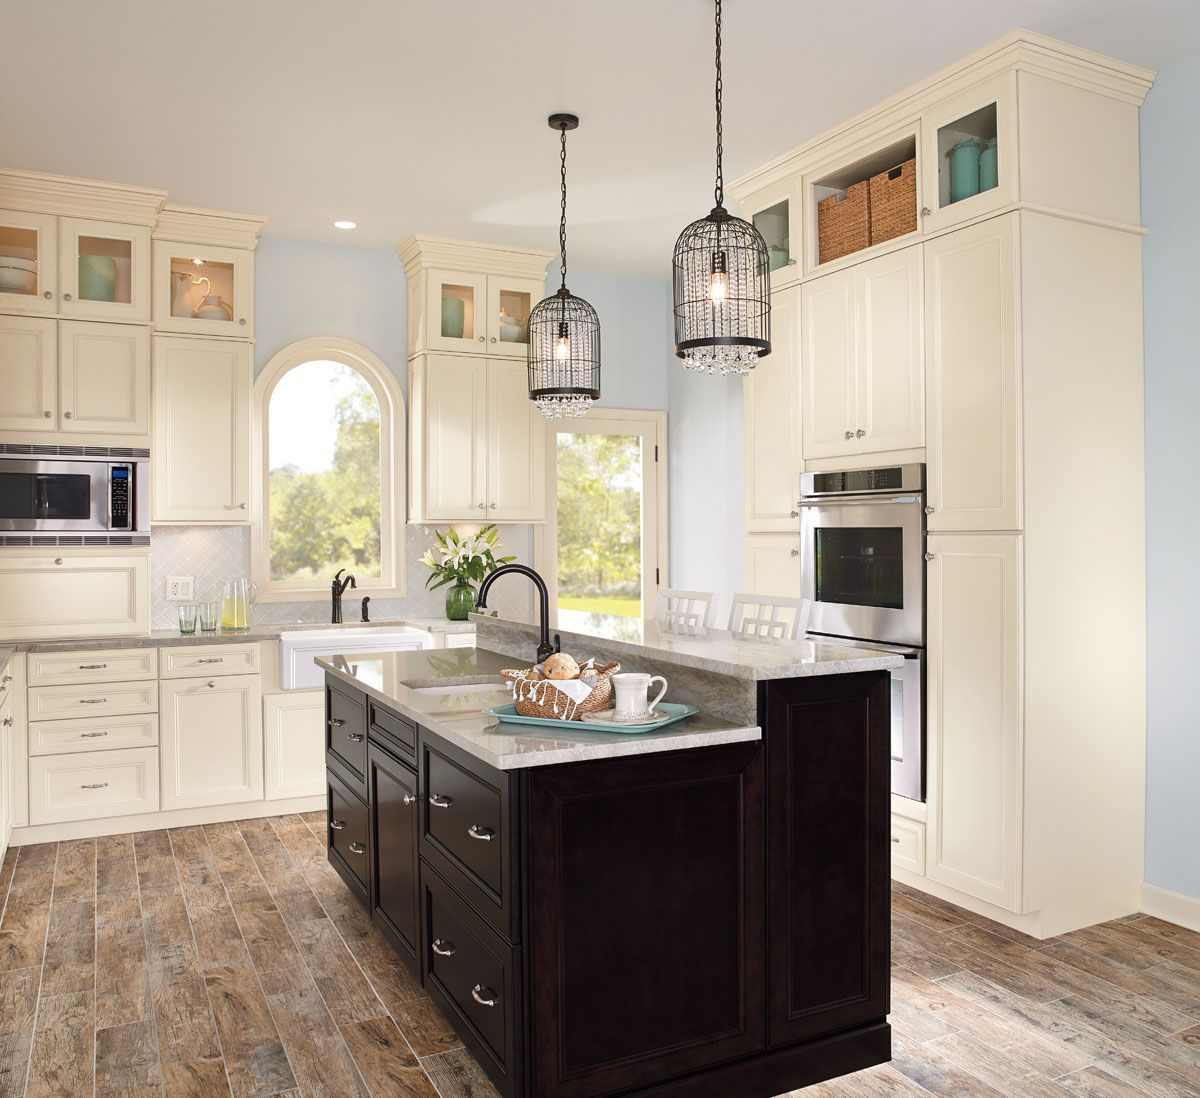 Condo Kitchen Remodel Painting waypoint living spaces | style 750 in painted silk | heart of the